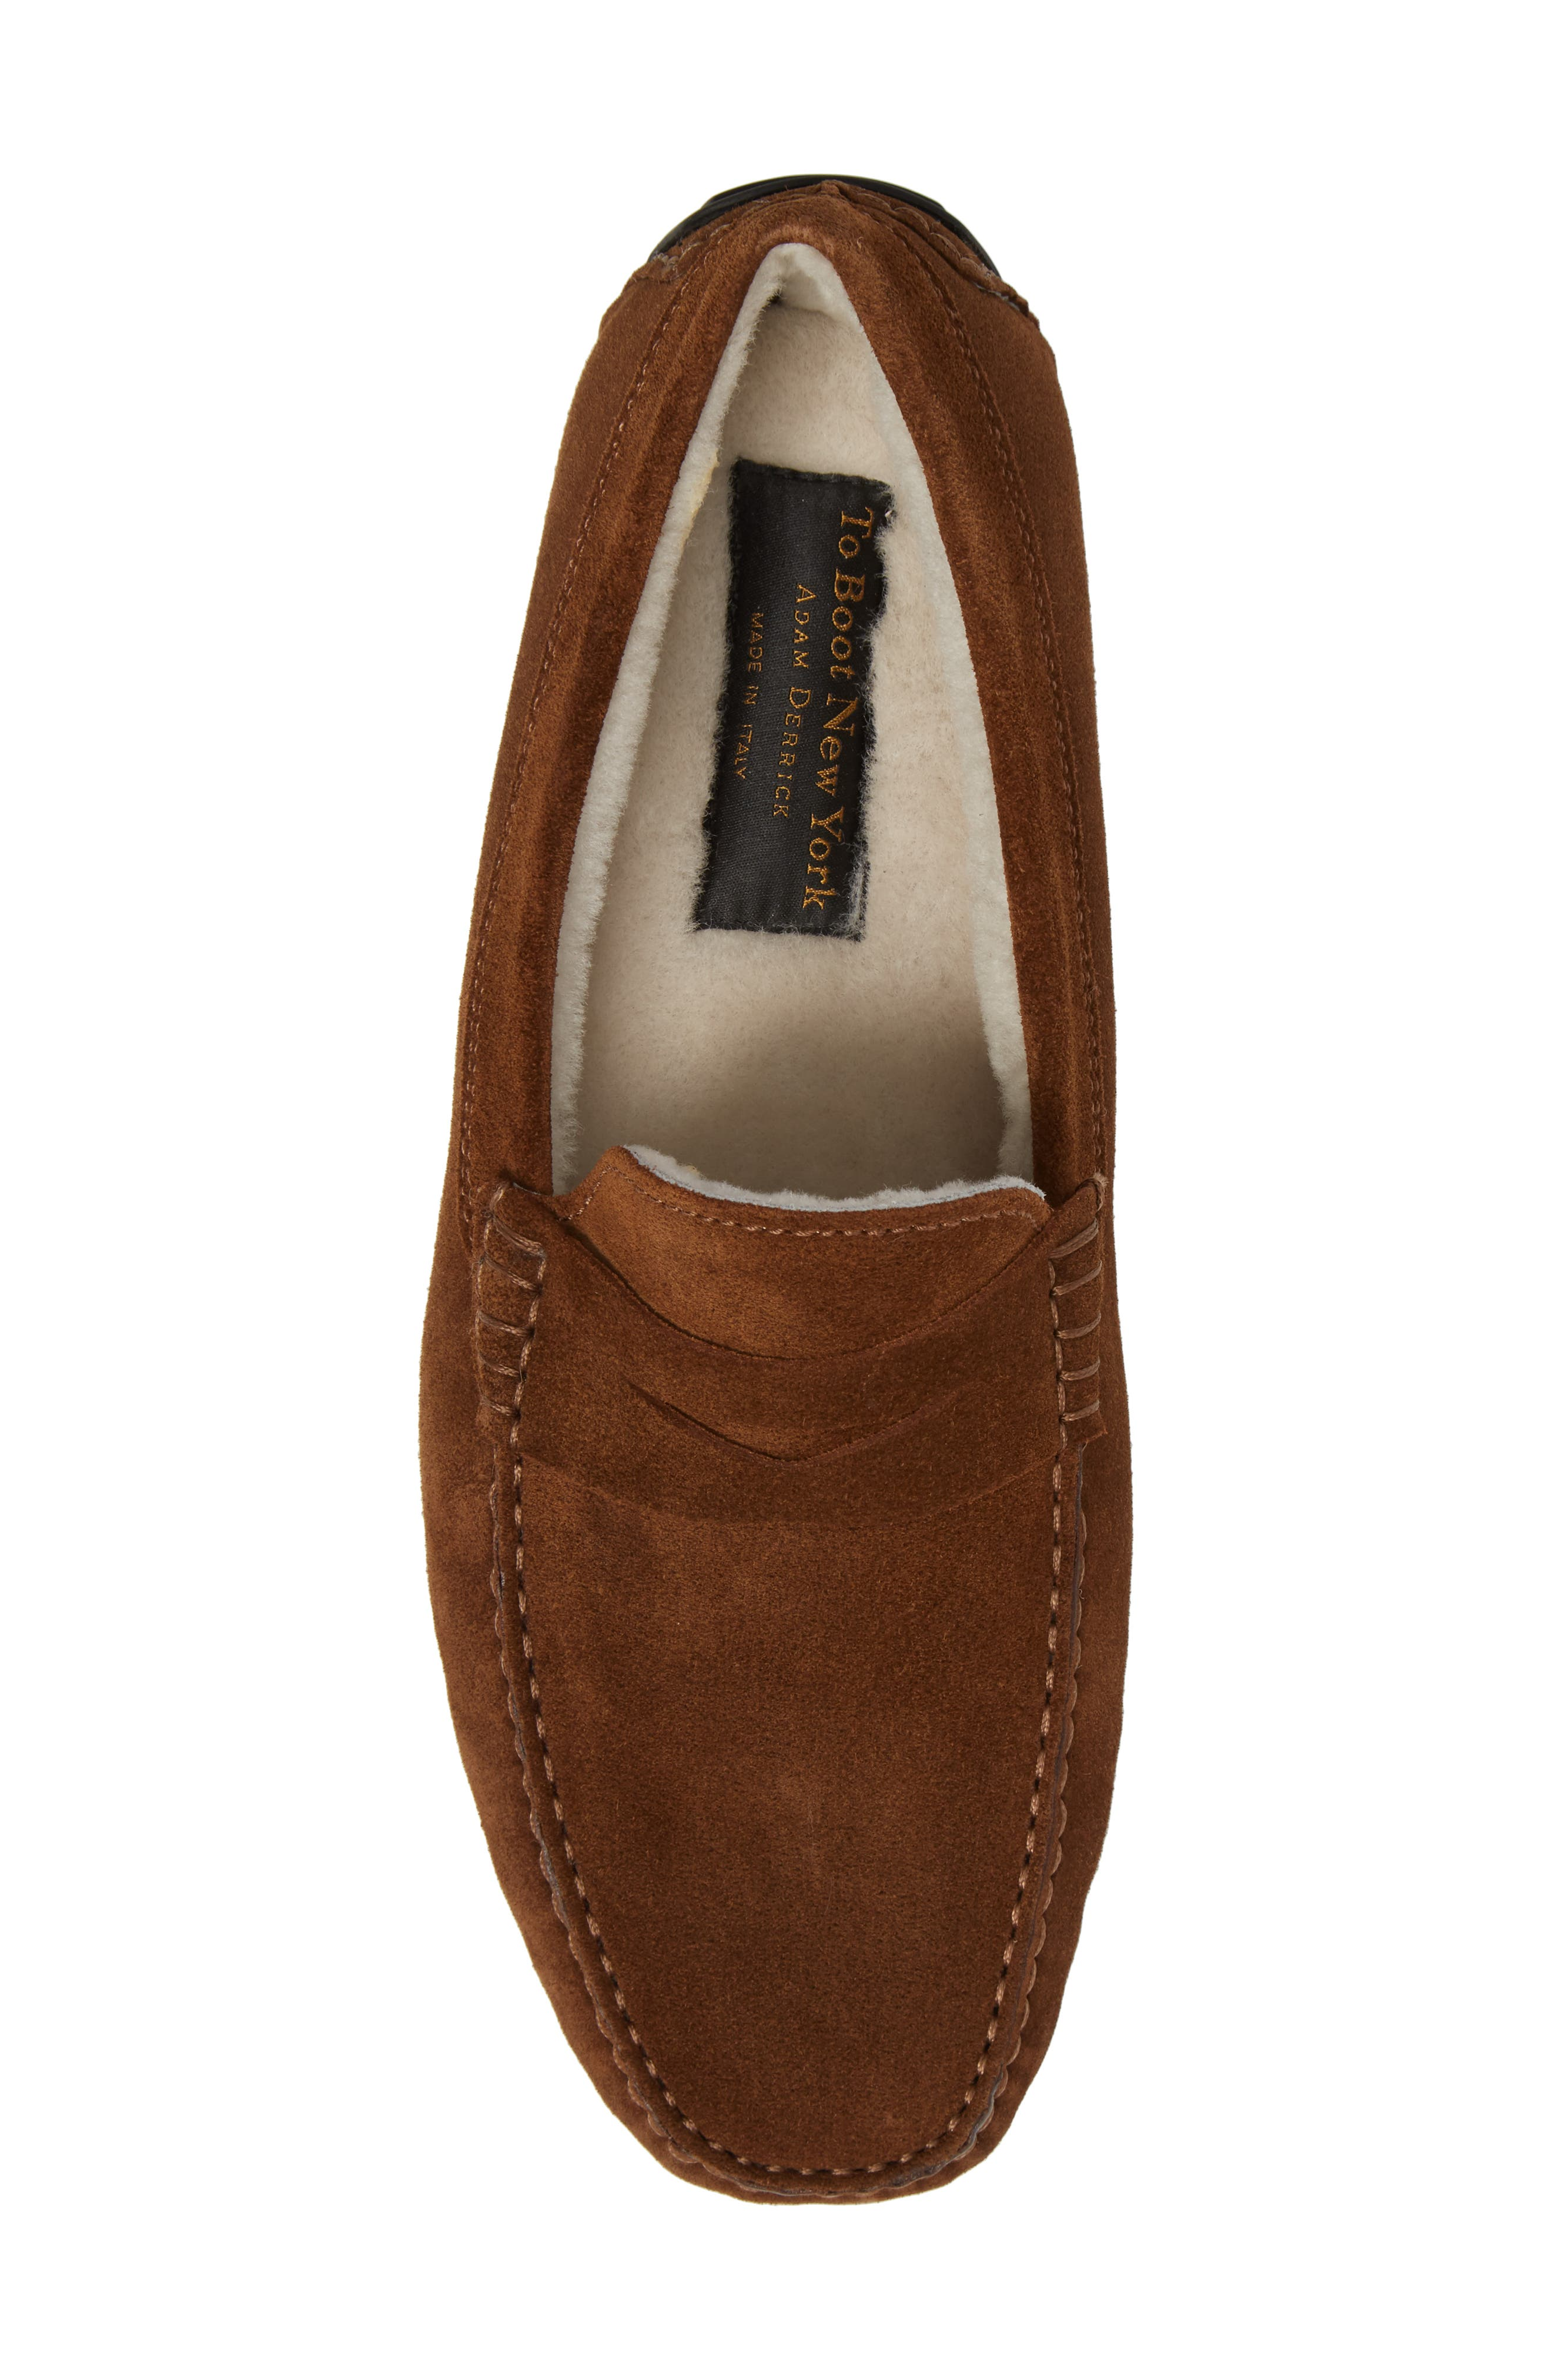 Norse Penny Loafer with Genuine Shearling,                             Alternate thumbnail 5, color,                             Brown/ Brown Suede Leather